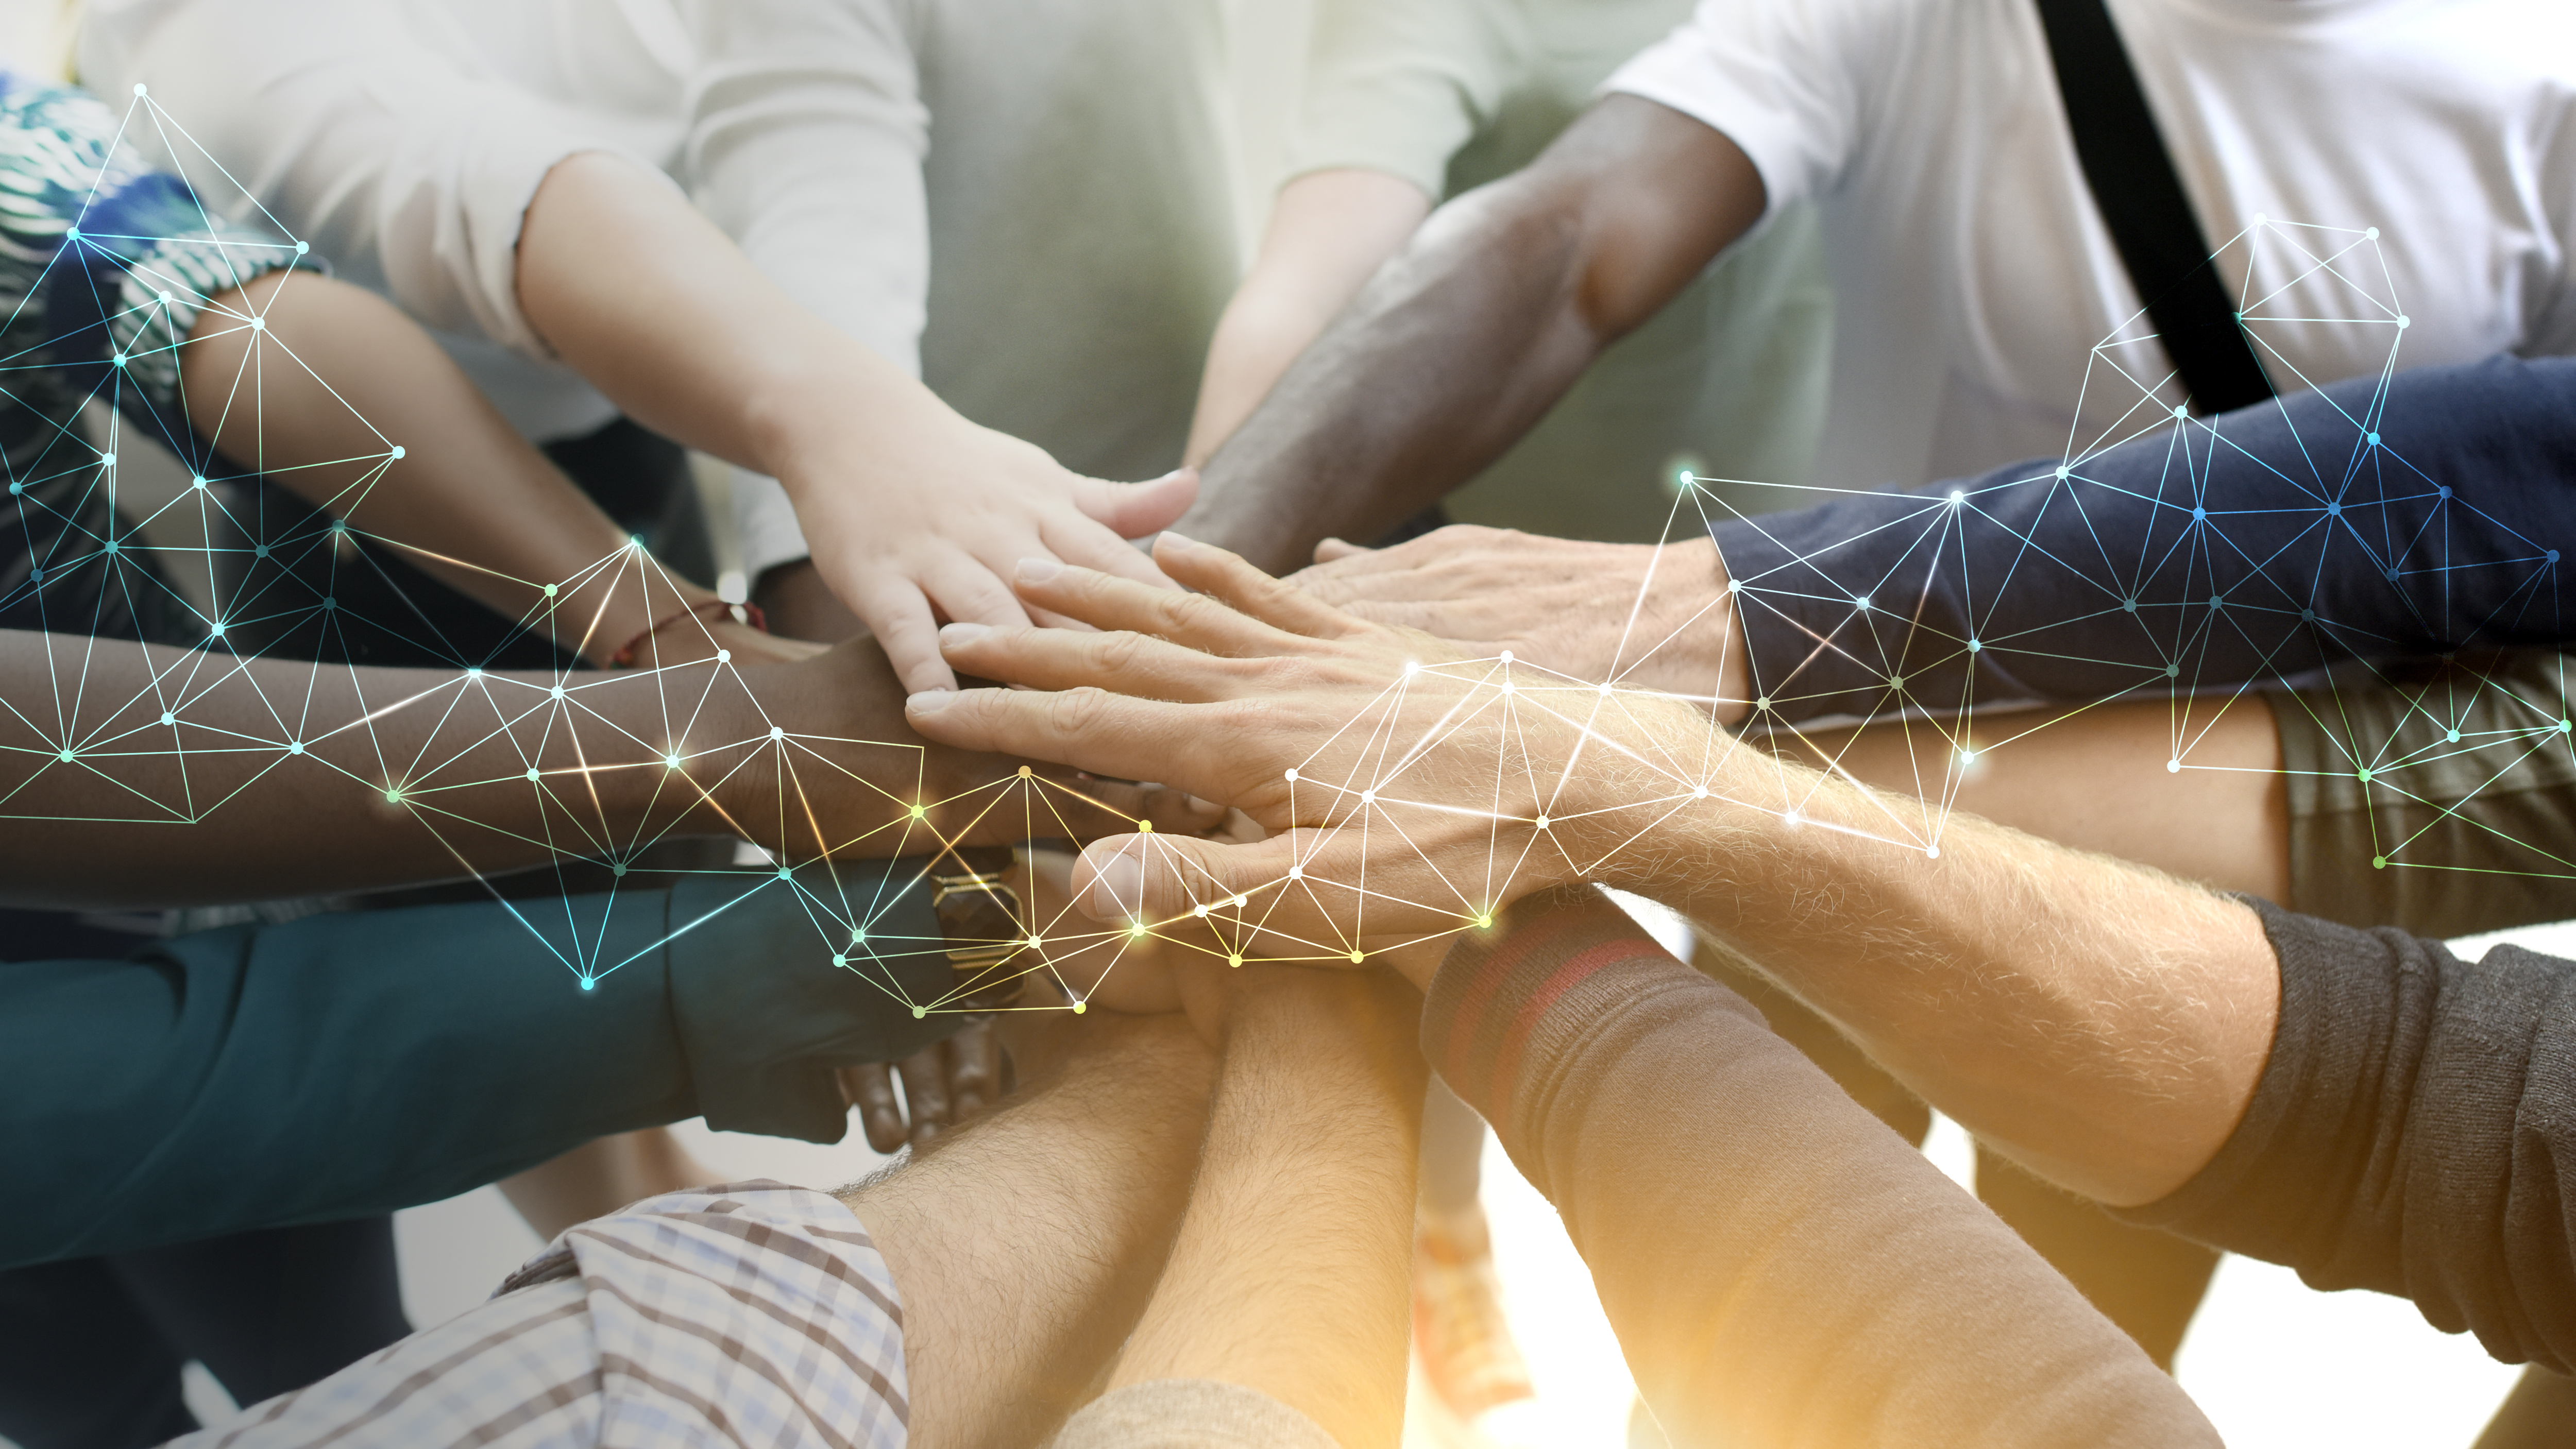 photo of a group of people putting their hands togehter as a sign of teamwork